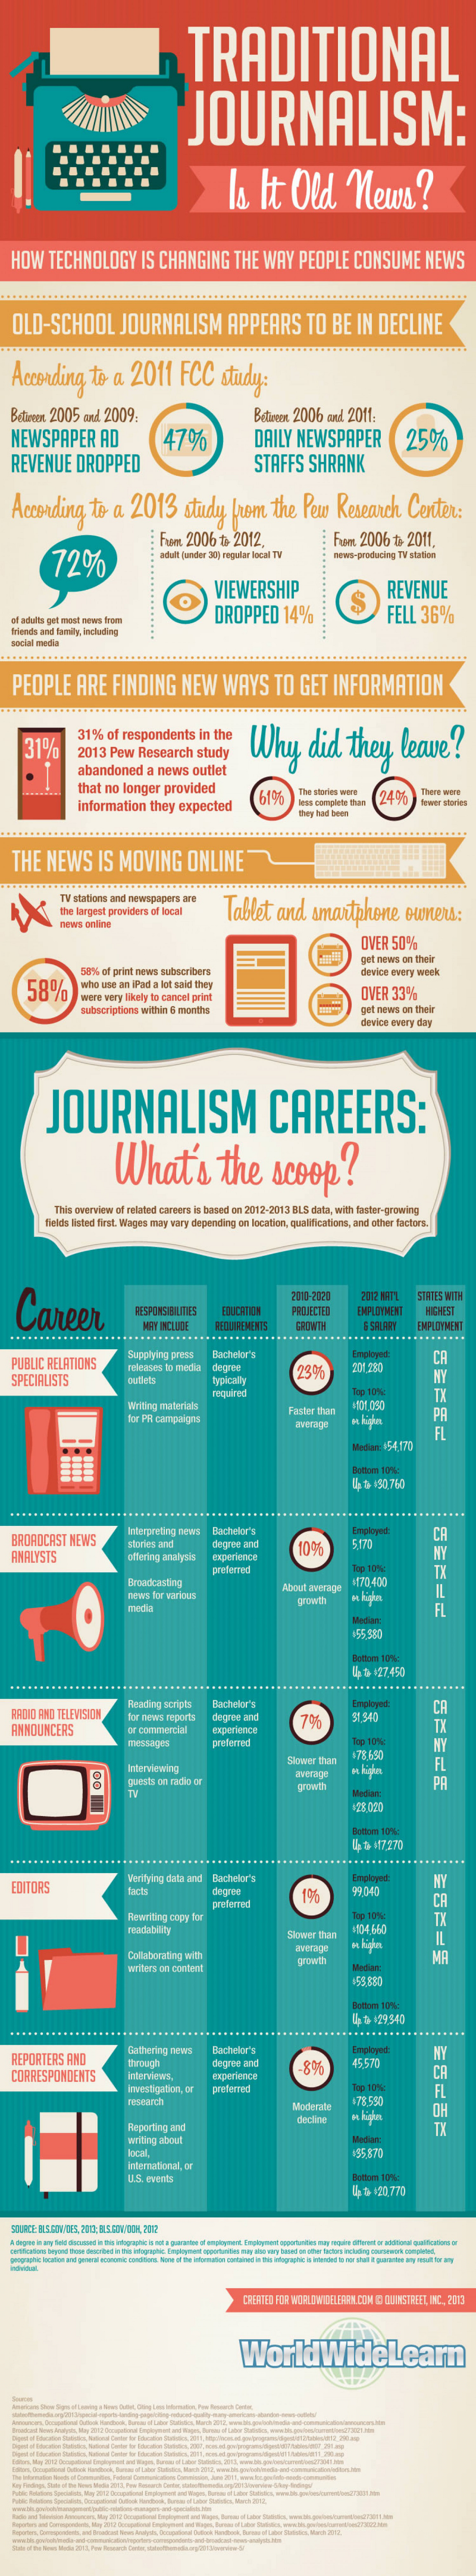 Journalism Industry Facts